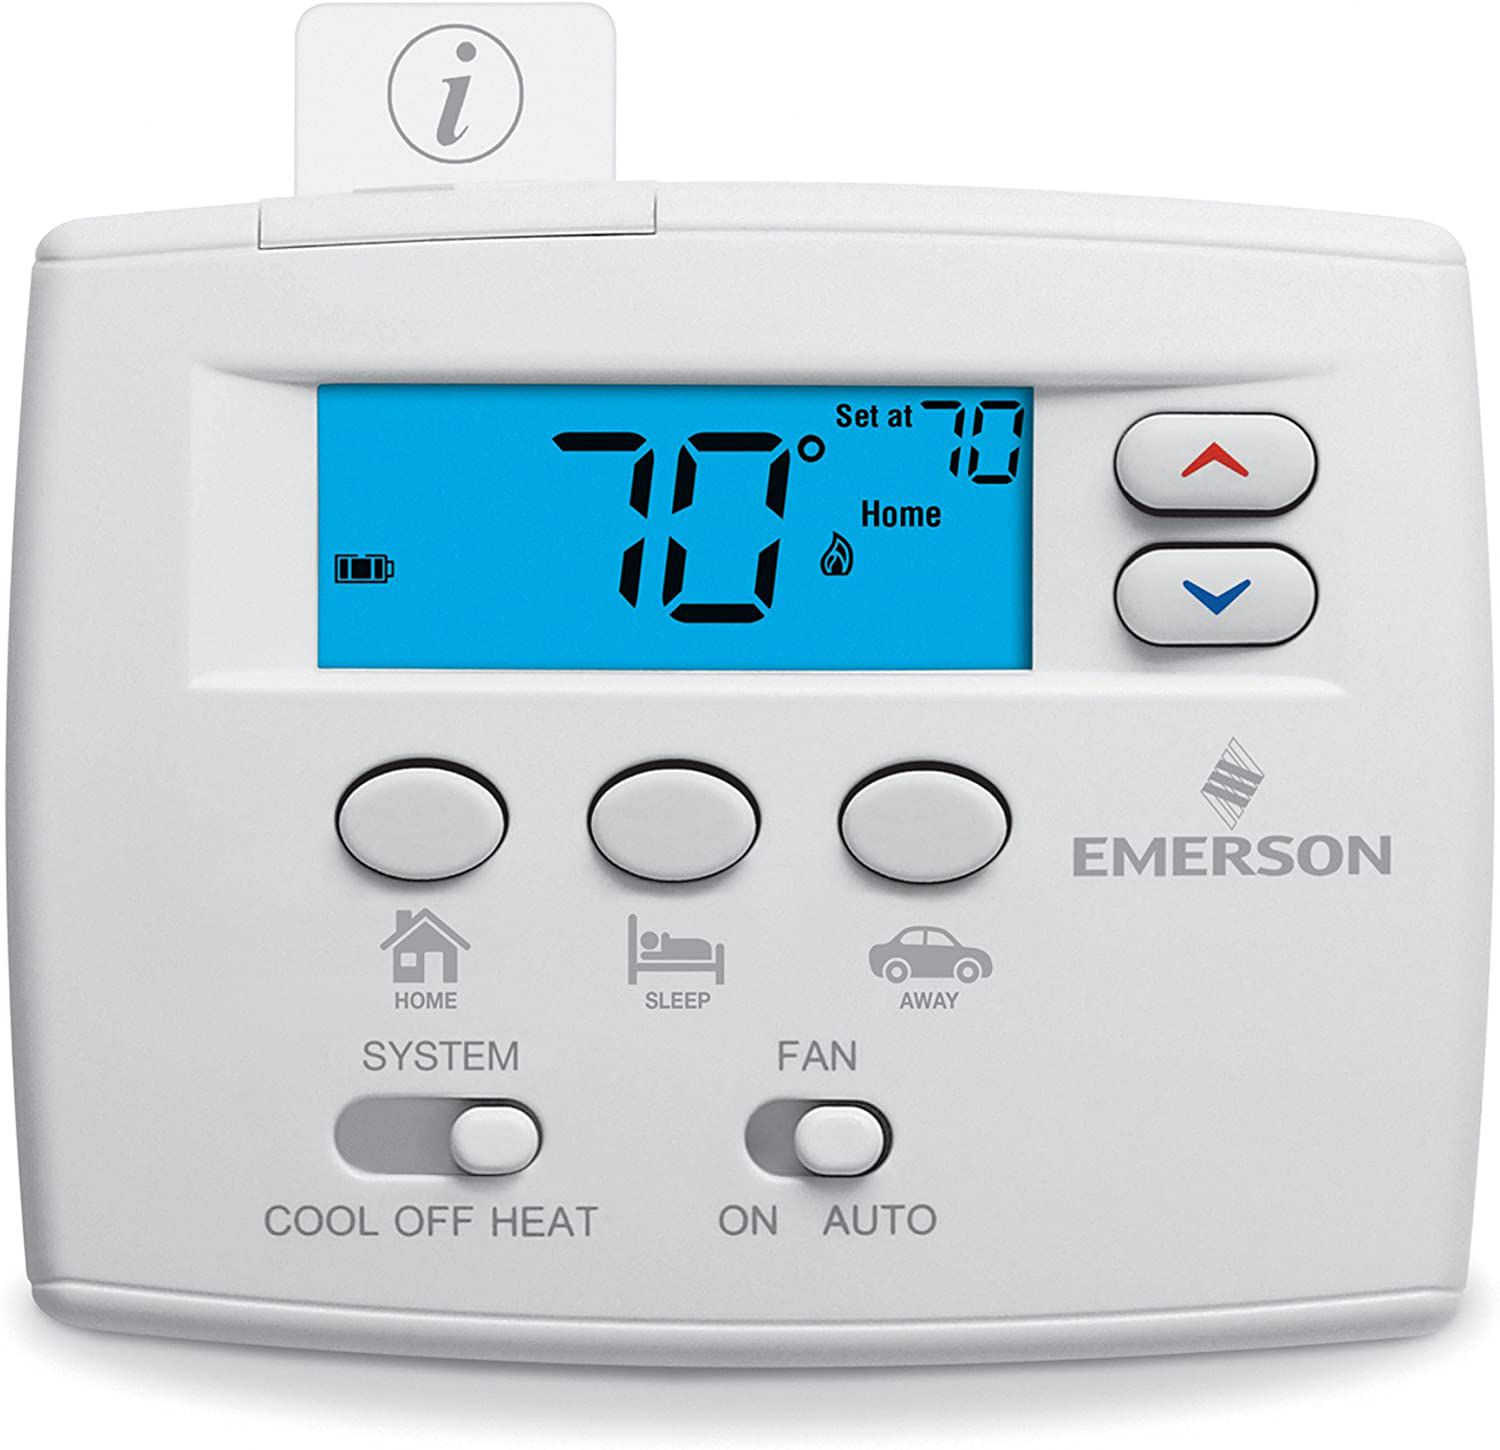 Emerson Blue Easy Set Non-Programmable Thermostat